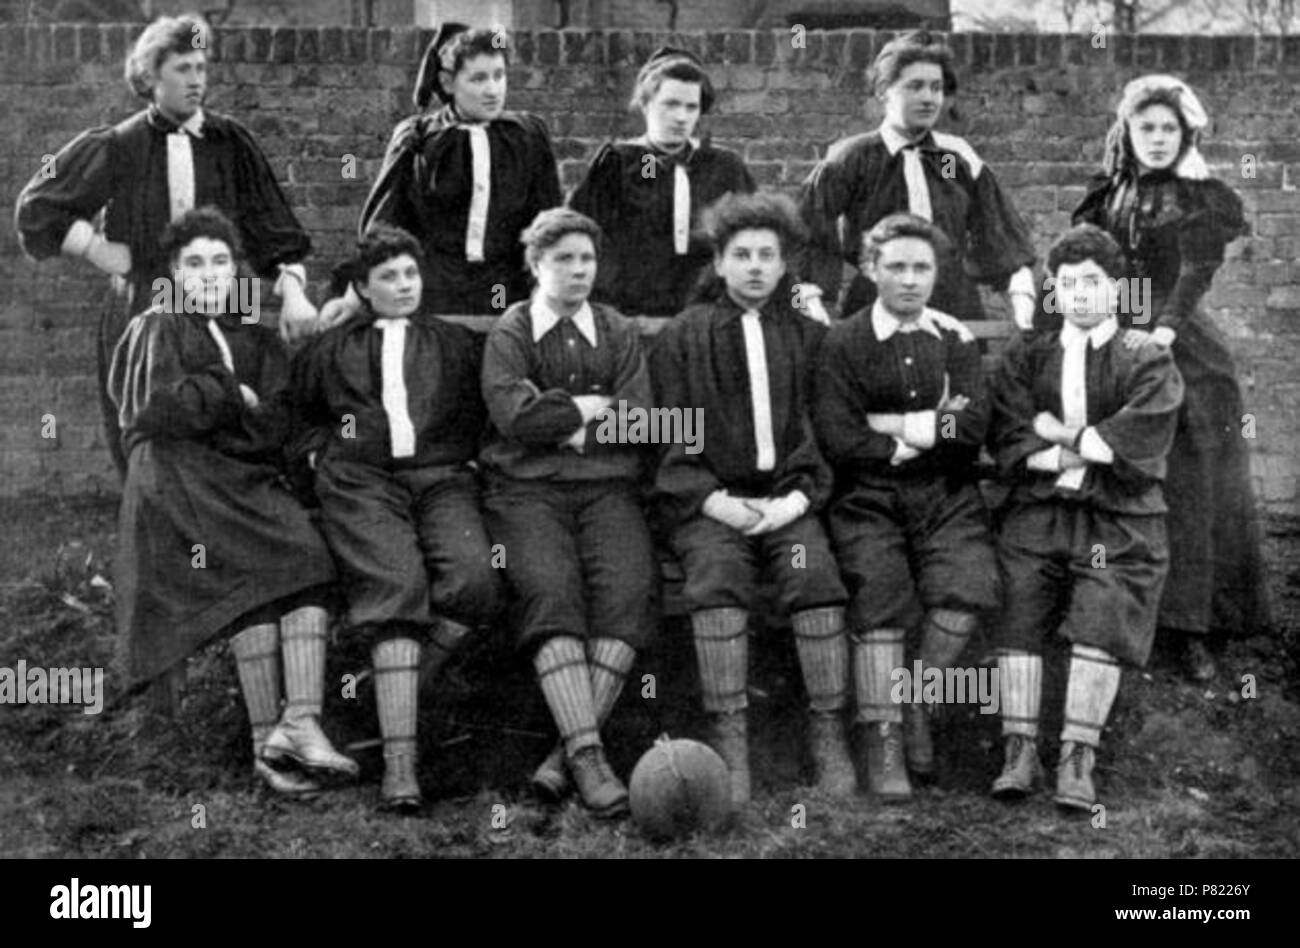 English: The British Ladies Football Club North Team - Mrs Graham's XI was a women's football (soccer) team formed by Helen Matthews in Edinburgh, Scotland in 1881. It is considered the first British women's football team and a pioneering team in the history of the sport. Because it was not safe for women to play football without harassment, the players used pseudonyms to protect their identities. Matthews, also a goalkeeper for the team, claimed to be 'Mrs Graham' The historic information was gathered by football historian Stuart Gibbs, 47, while completing an art exhibition called Moving the Stock Photo